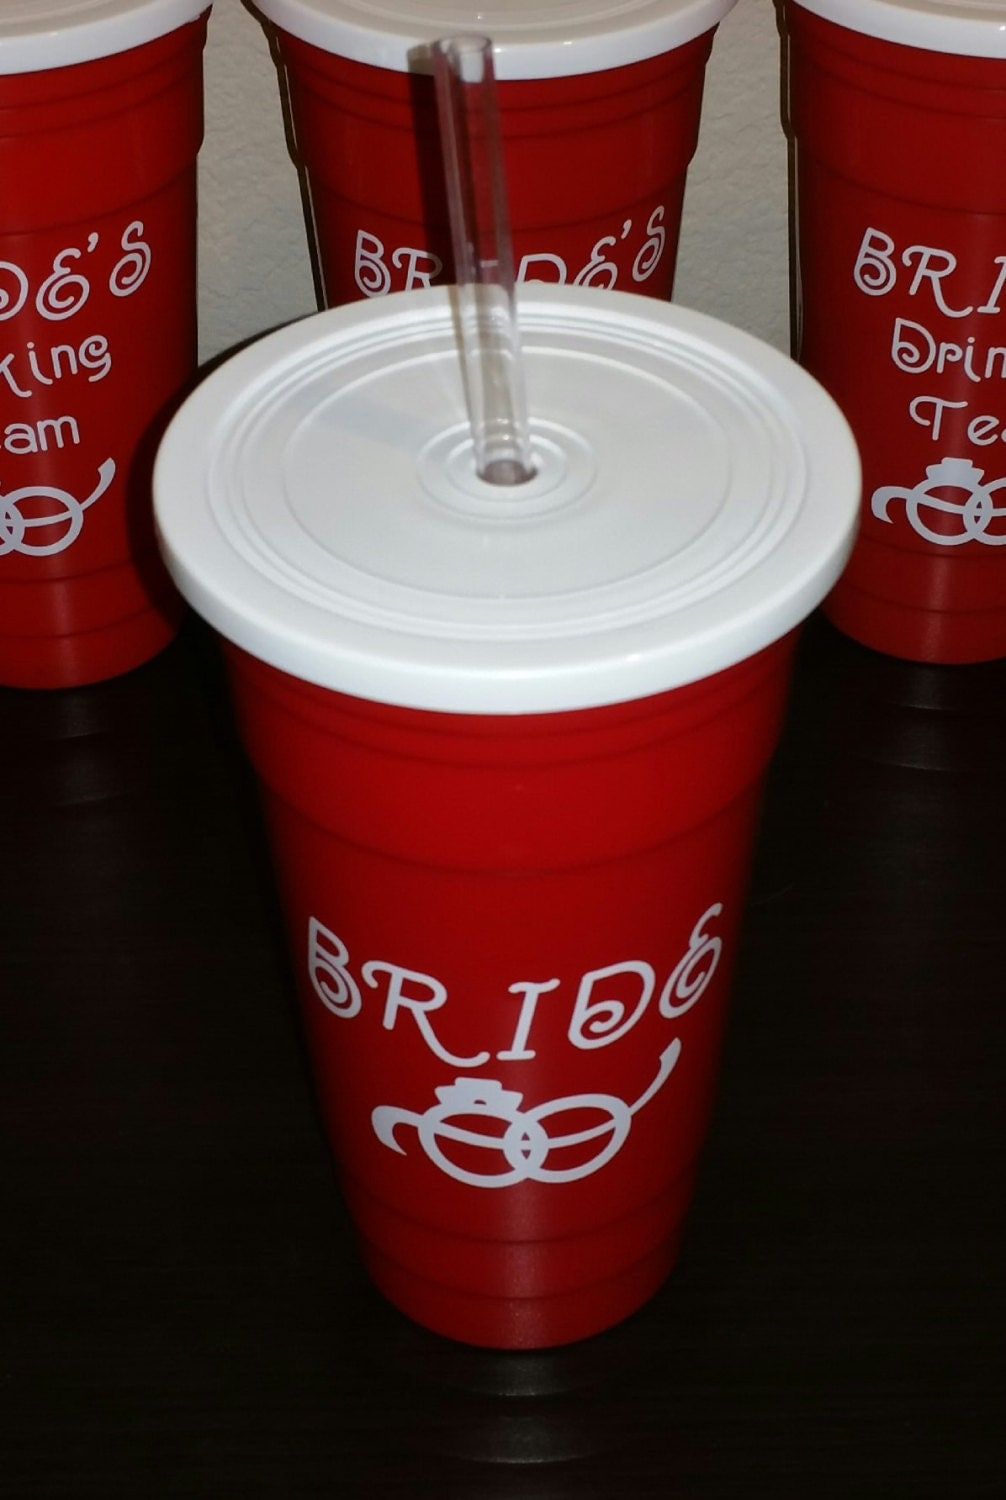 32 Ounce Bride Red Solo Cup Bpa Free Plastic Tumbler With Lid